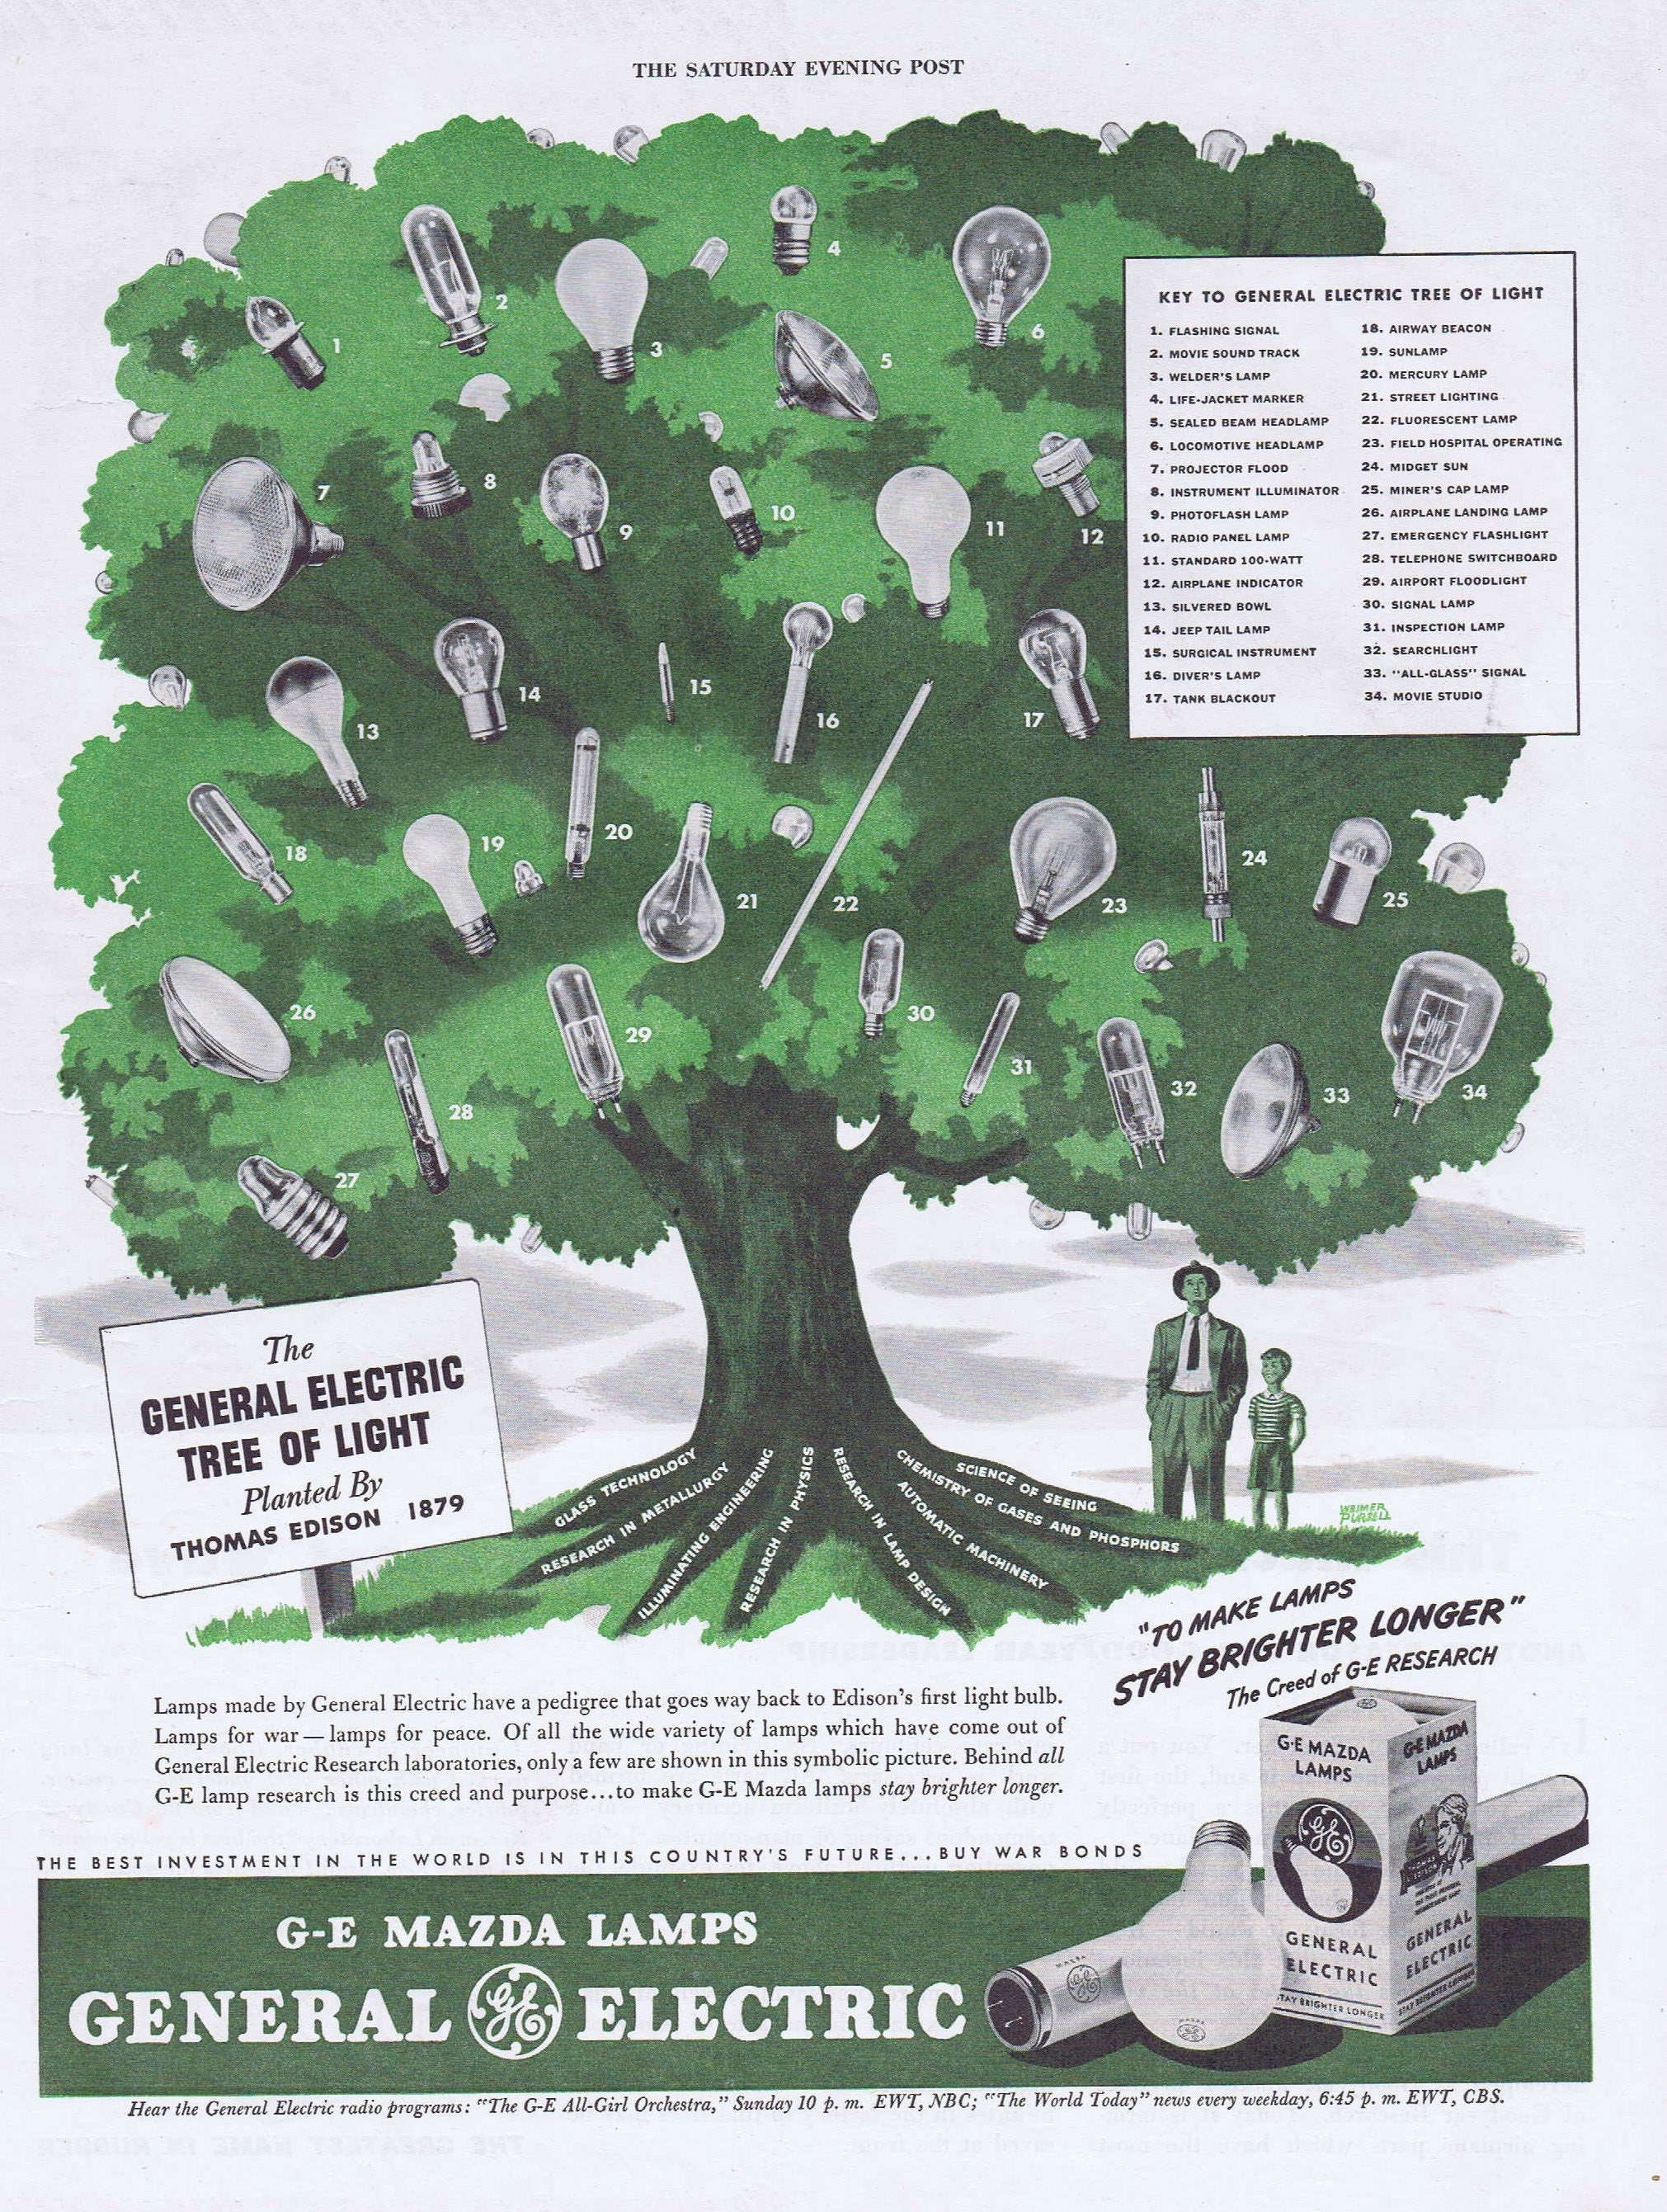 1944 General Electric Tree of Light Planted by Thomas Edison and G-E Mazda  Lamps or Good Year Roto Spreader Original Vintage Advertisement